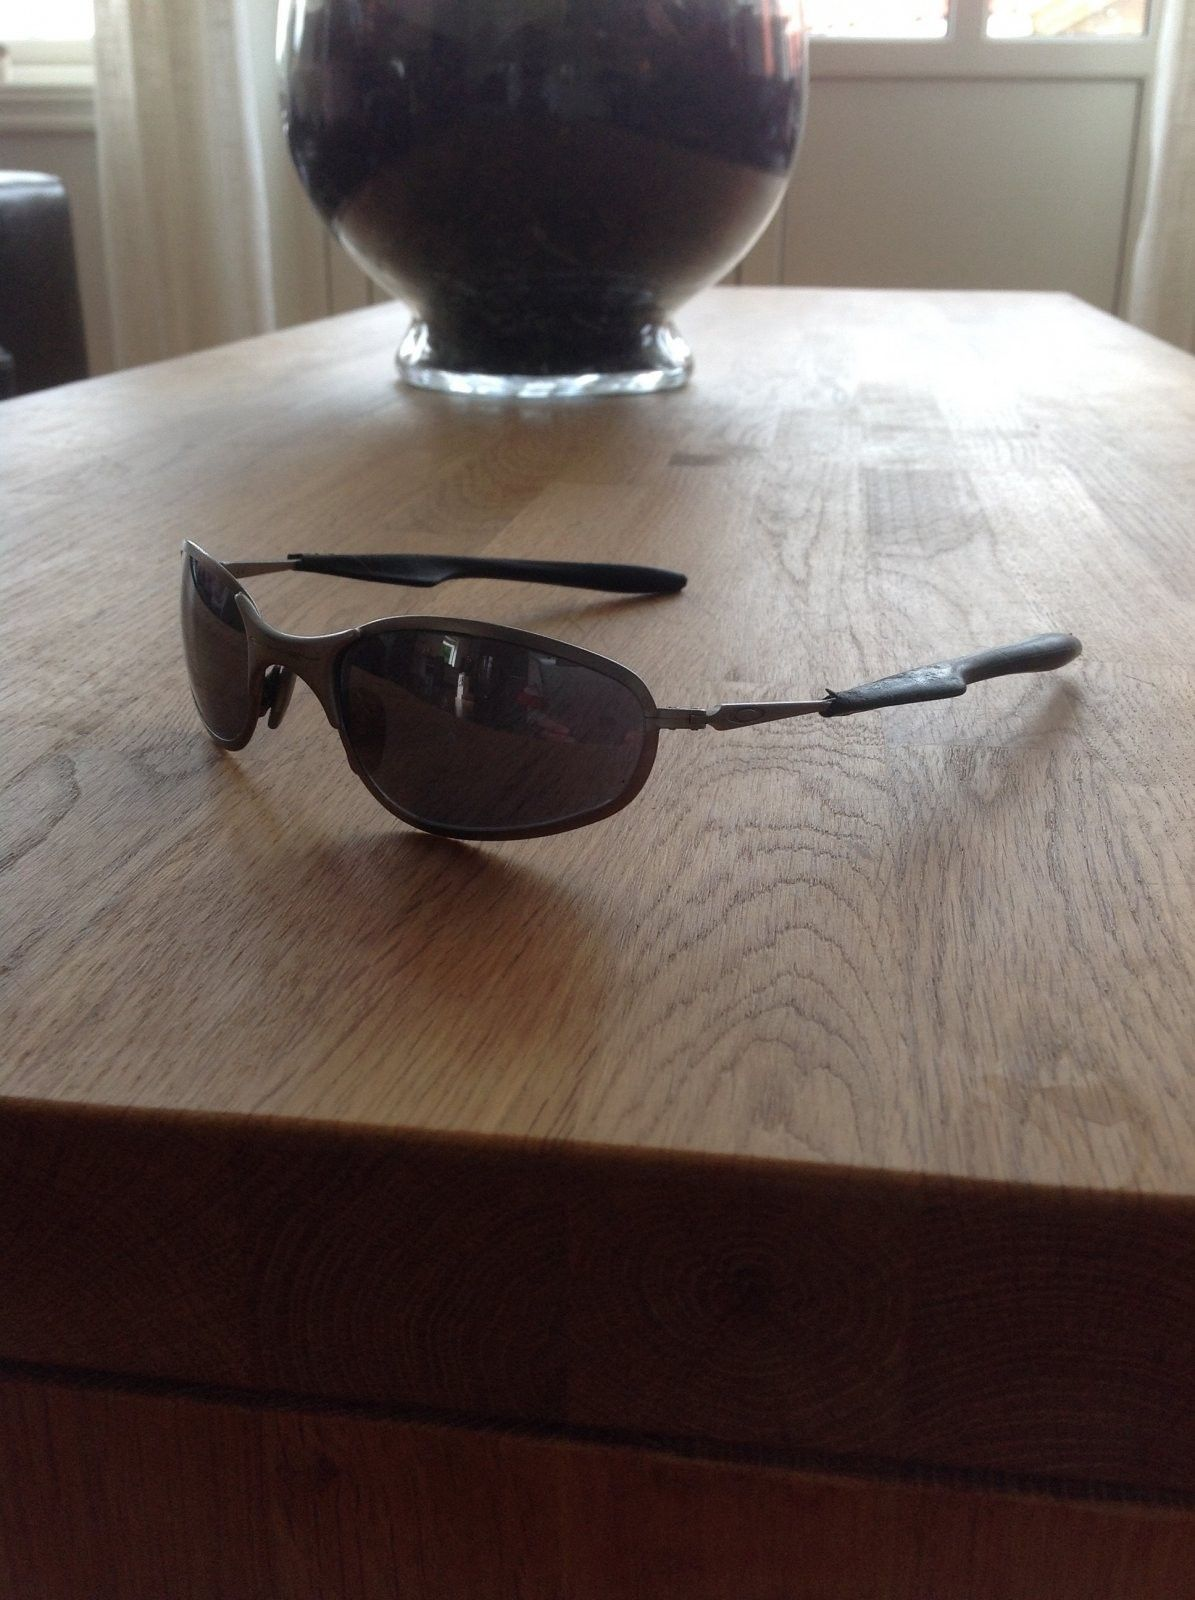 Need Help Identyfing Two Oakley Models - image.jpg